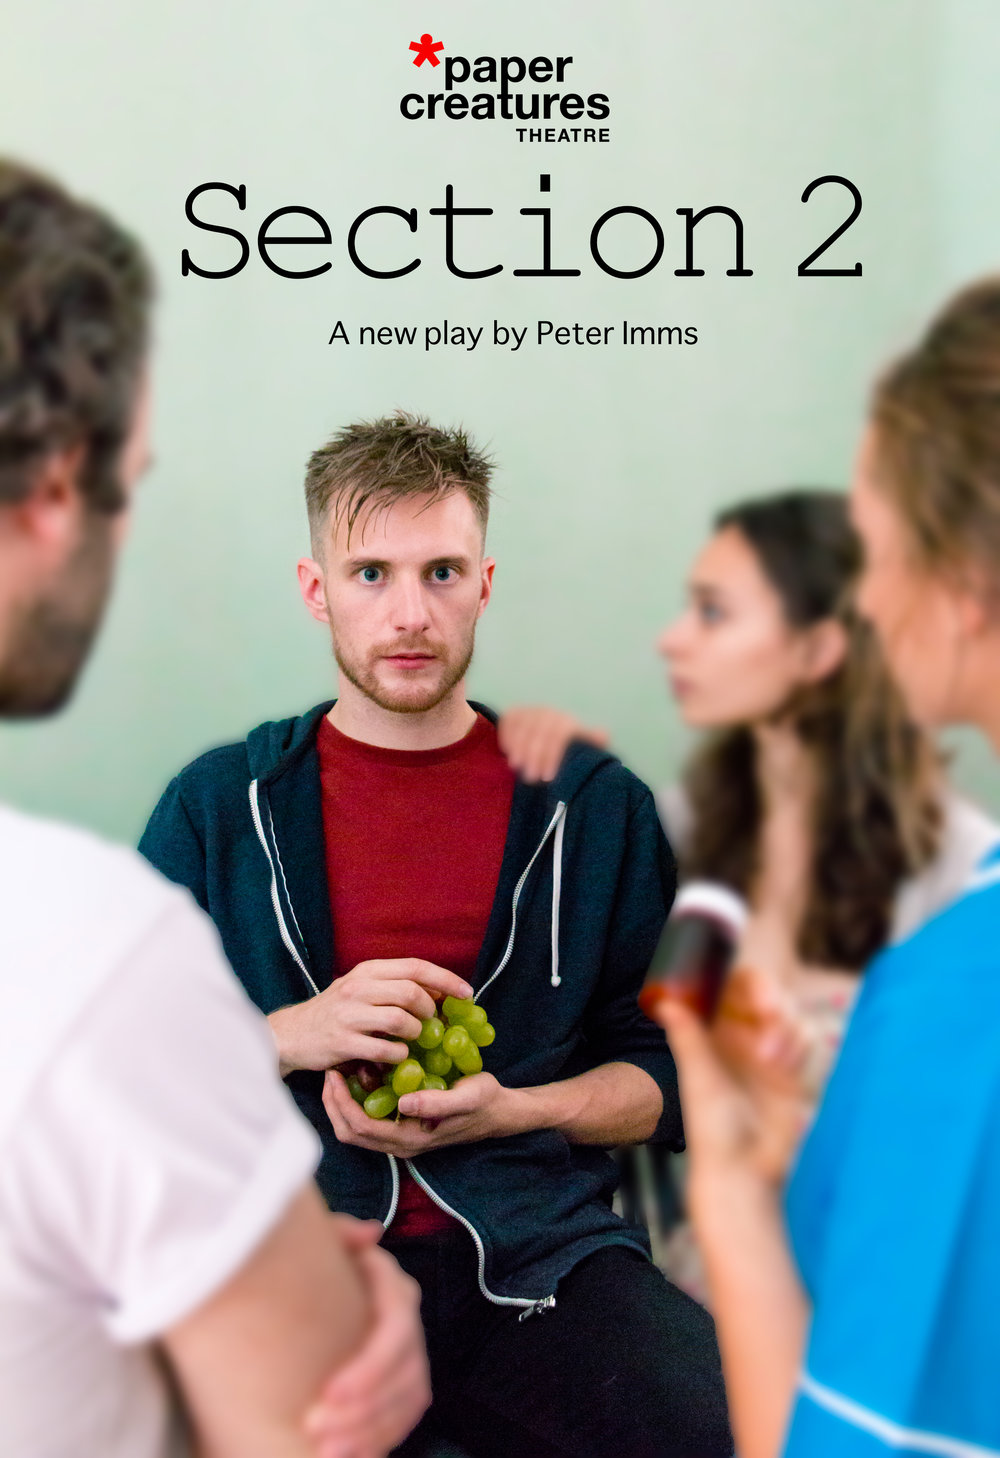 Section 2 Main Image.jpg